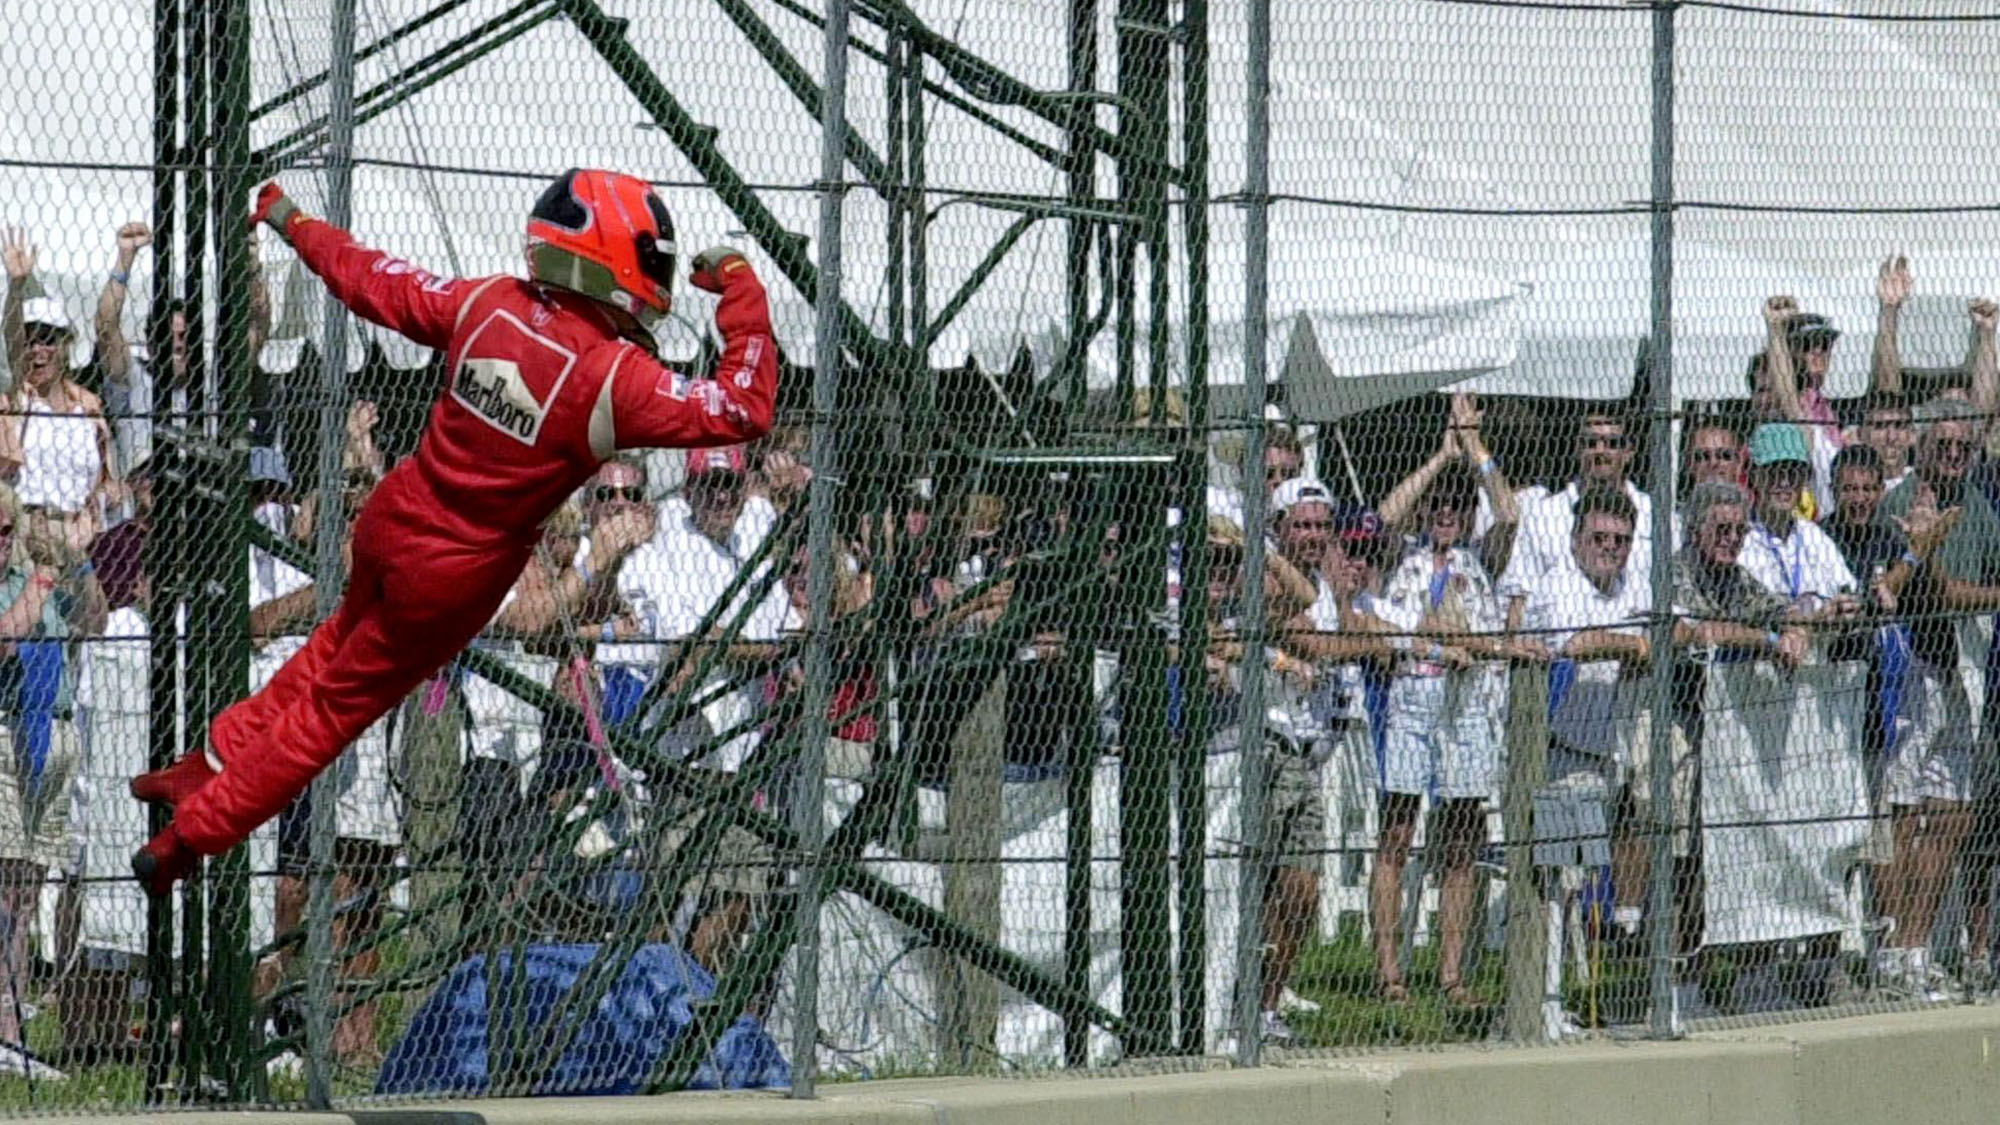 Spider Man Helio Castroneves climbs the fence at Ohio IndyCar race in 2000